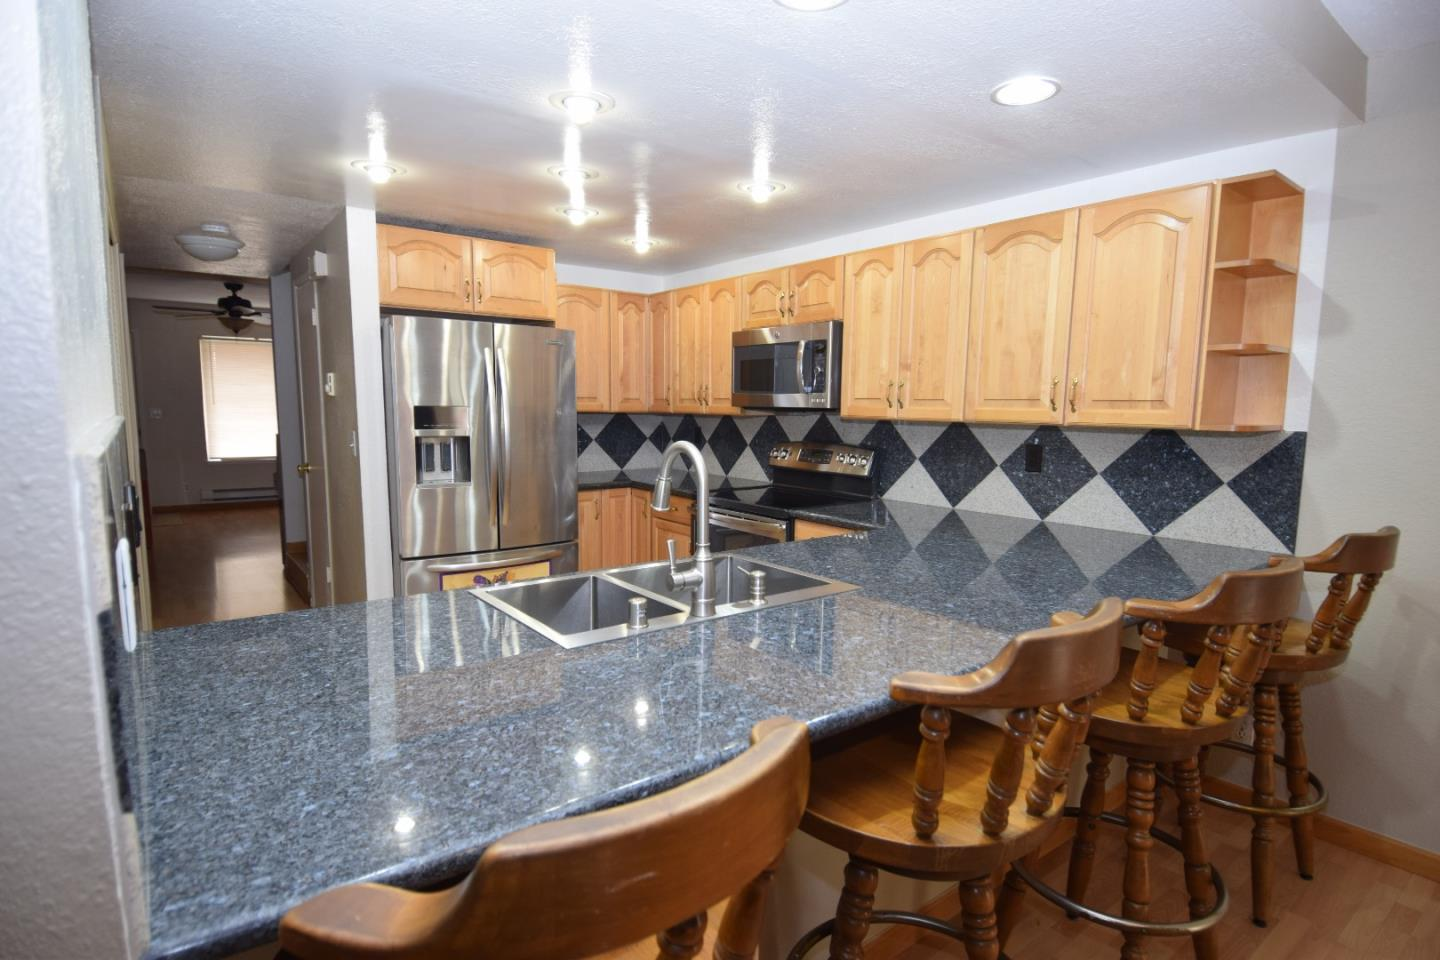 536 W CAMPBELL AVE, CAMPBELL, CA 95008